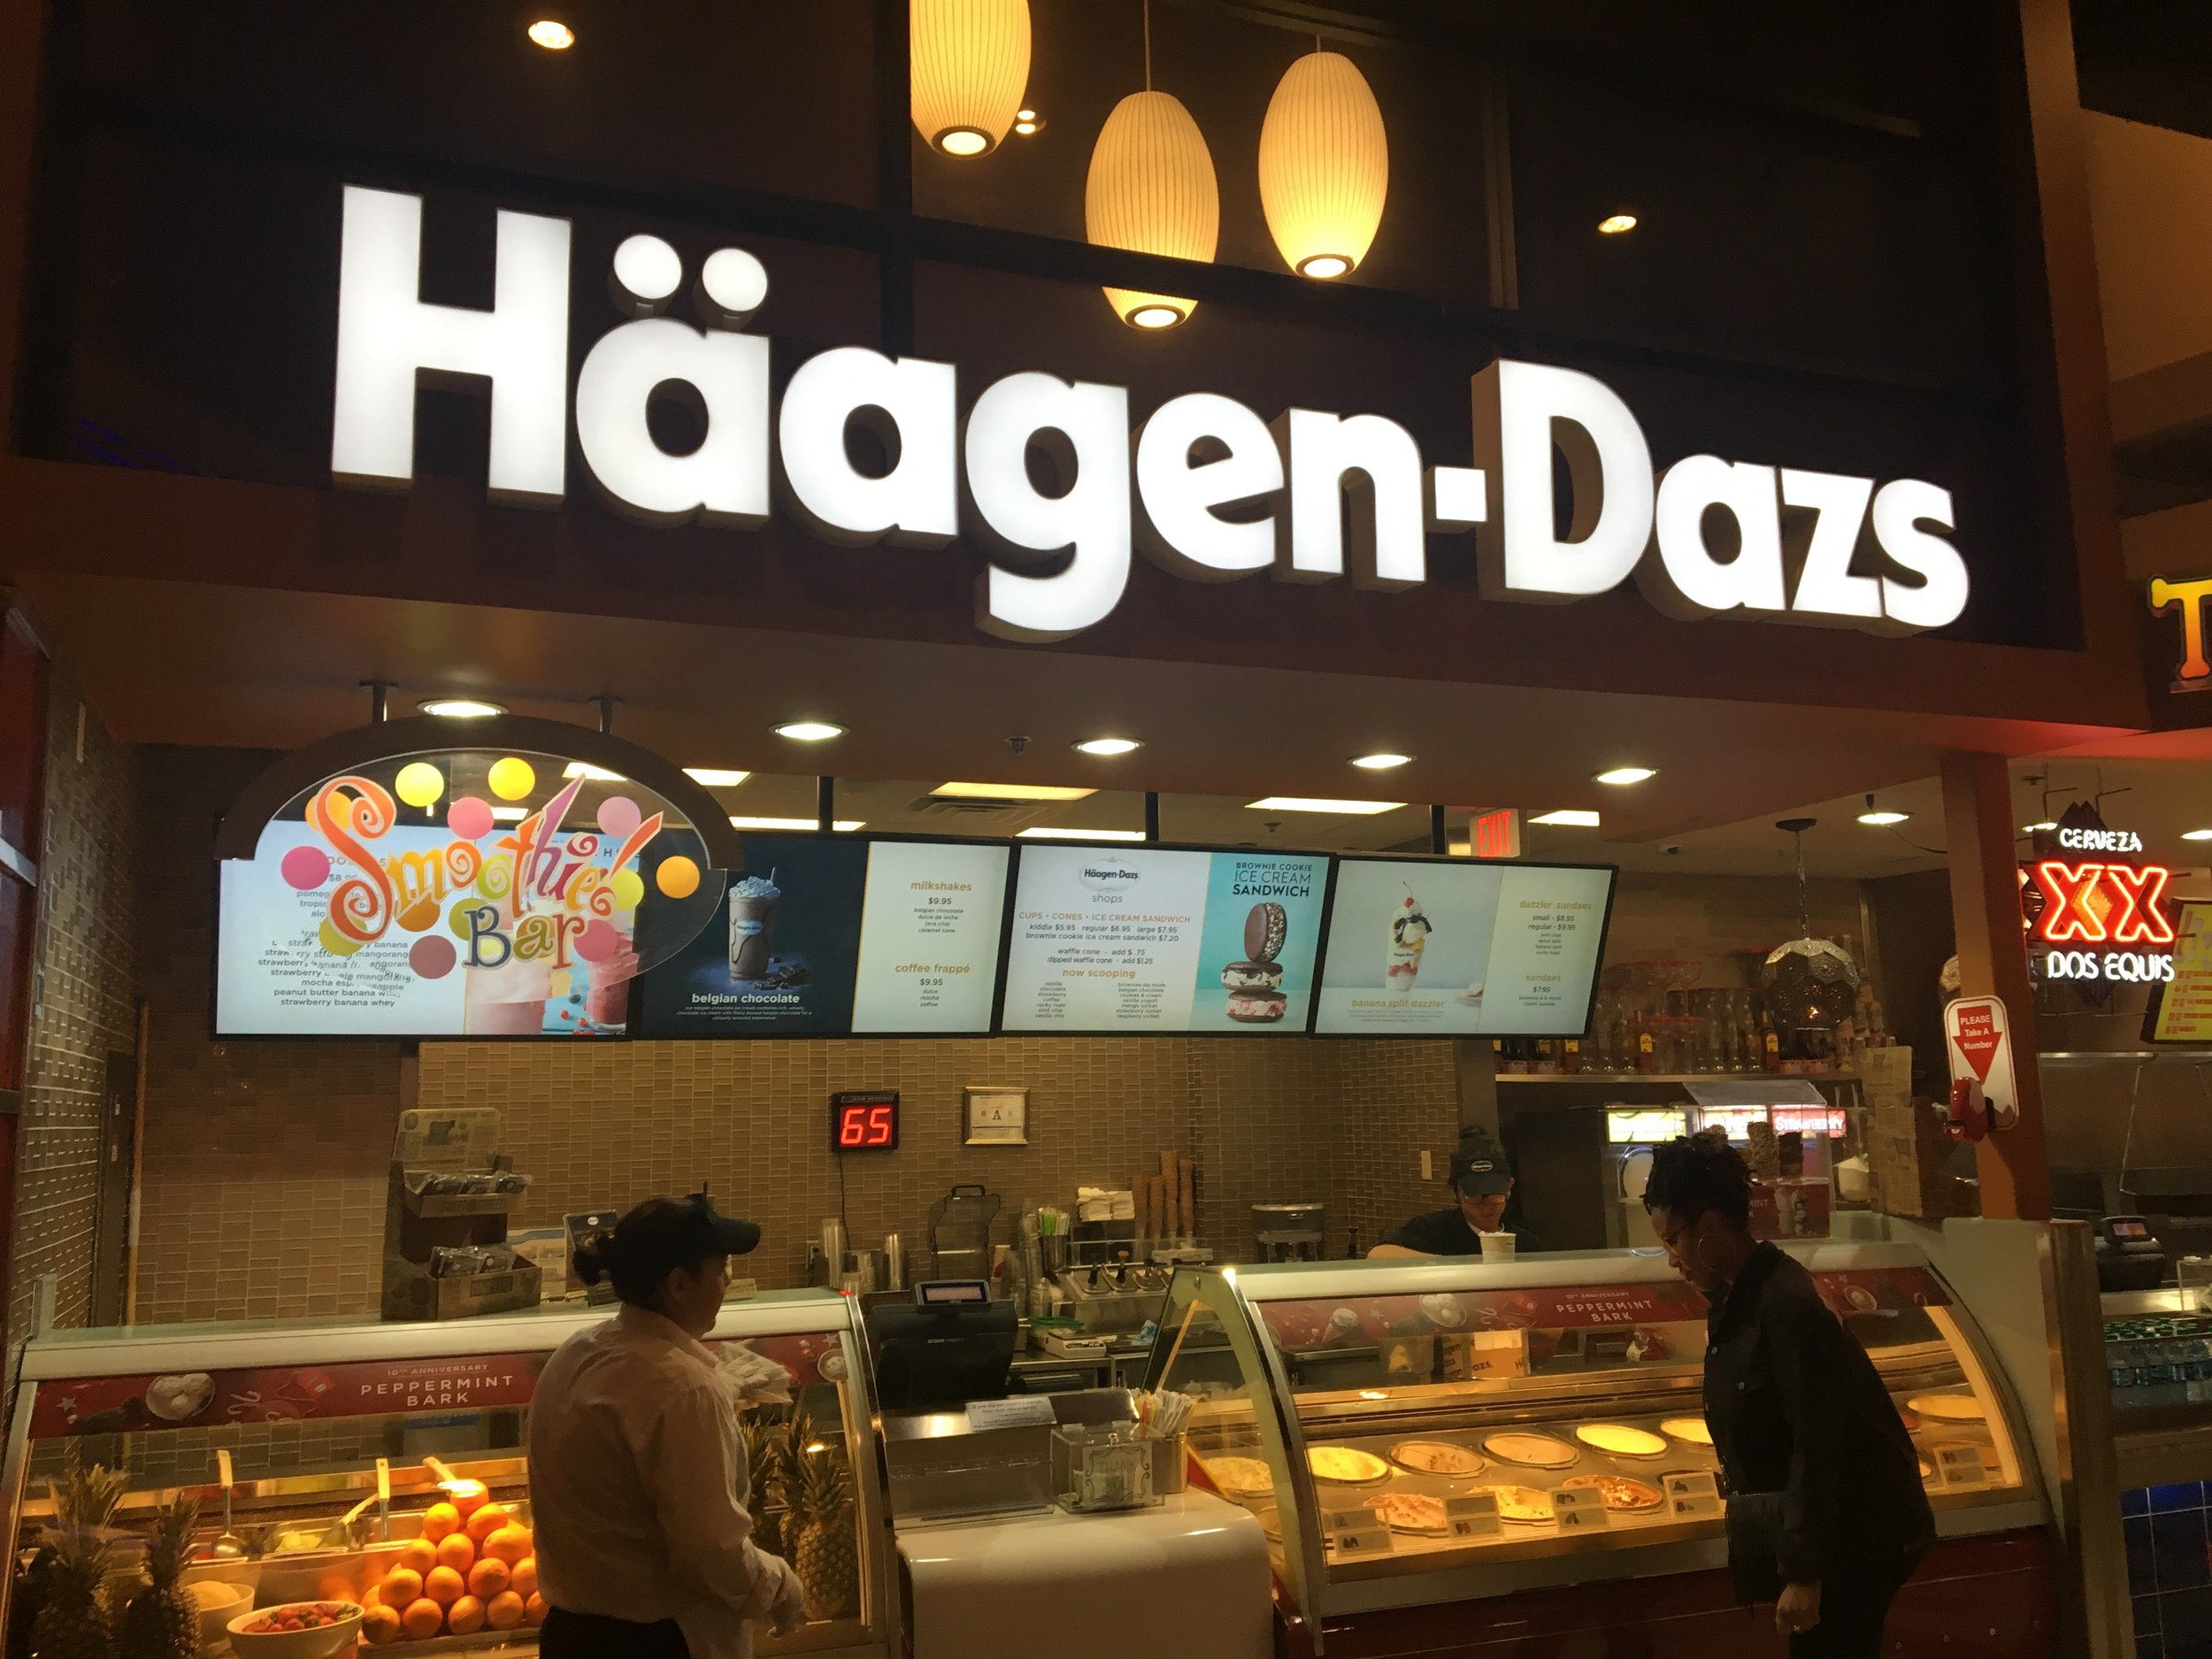 Does anyone else have a soft spot for Haagen-Dazs? I grew up on this ice cream!